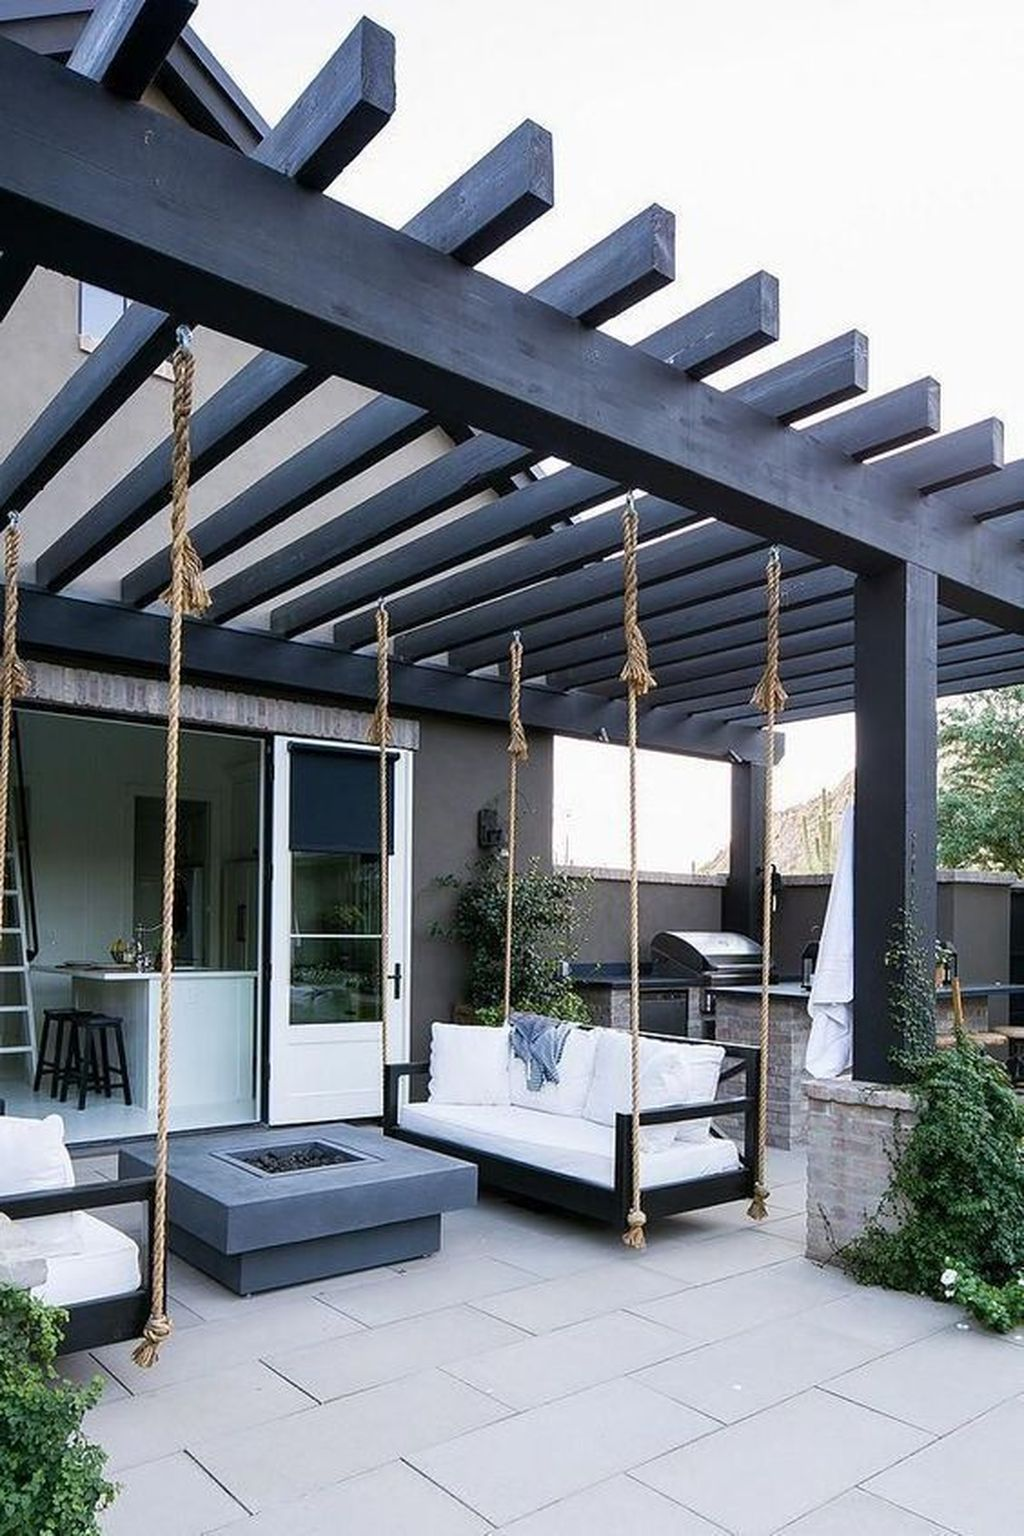 Wonderful Backyard Patio Designs Ideas Perfect For Summertime 22